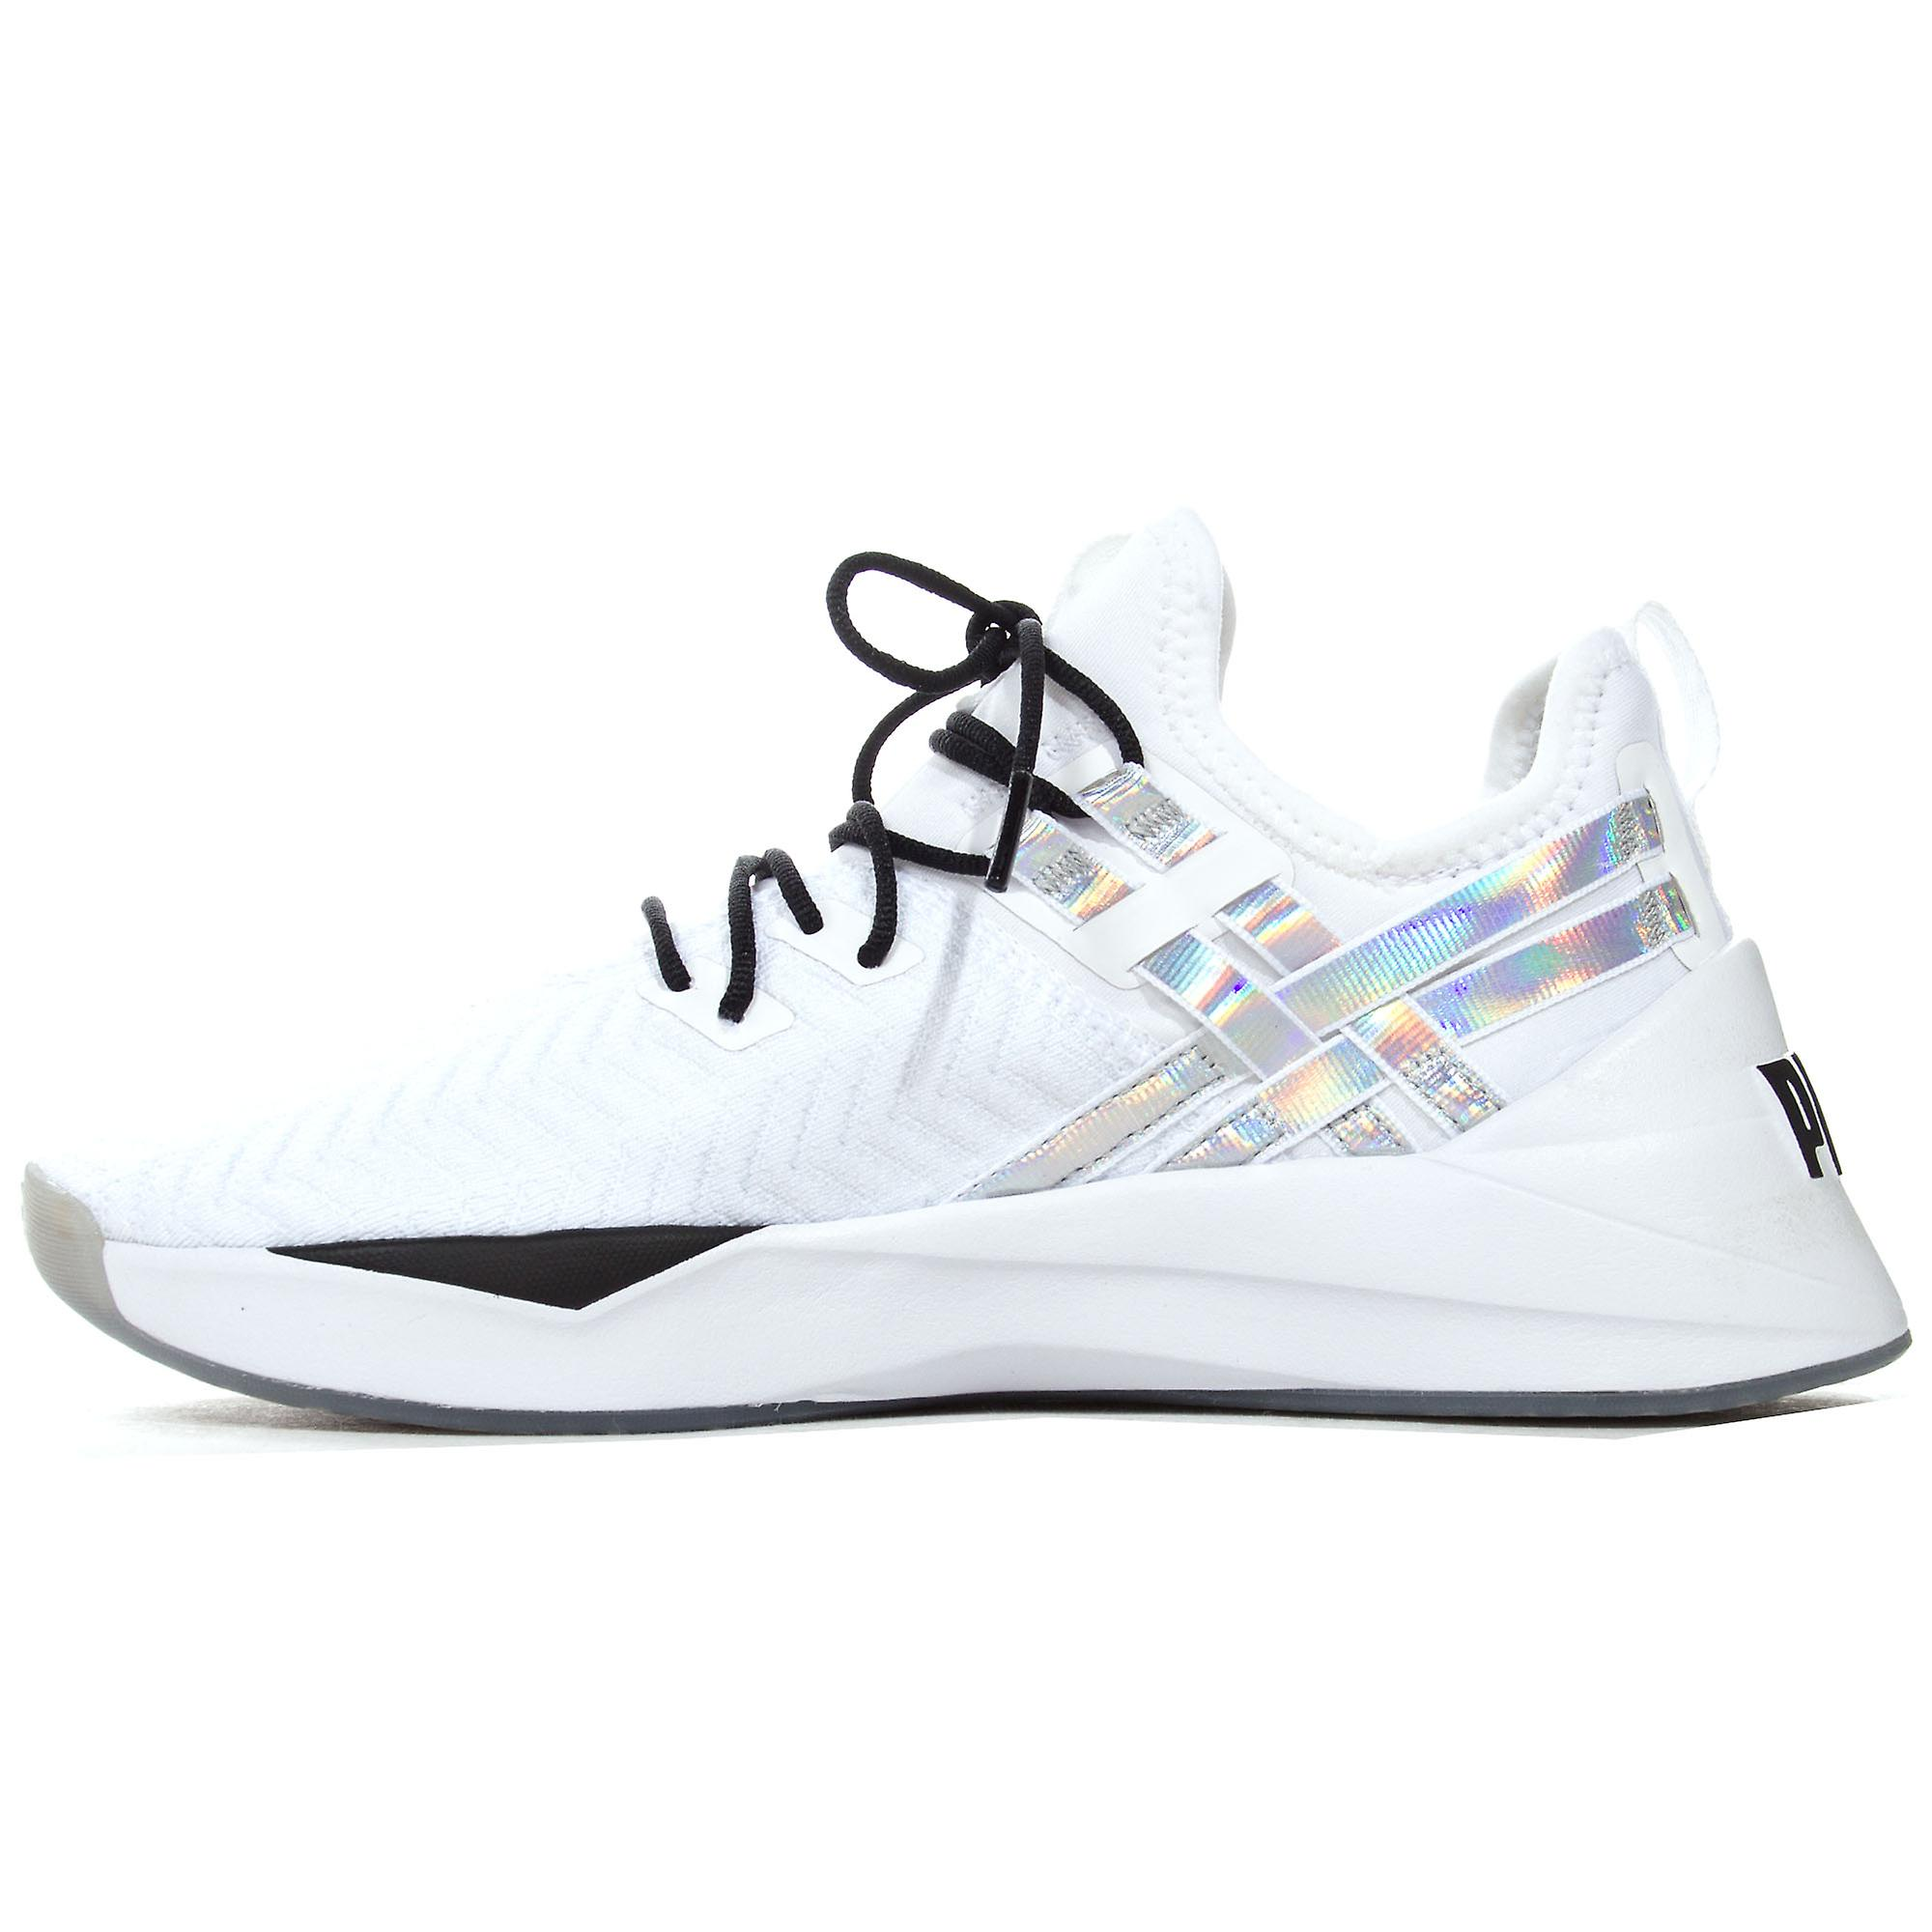 Puma Jaab XT Iridescent Trailblazer Womens Fitness Trainer White/Black